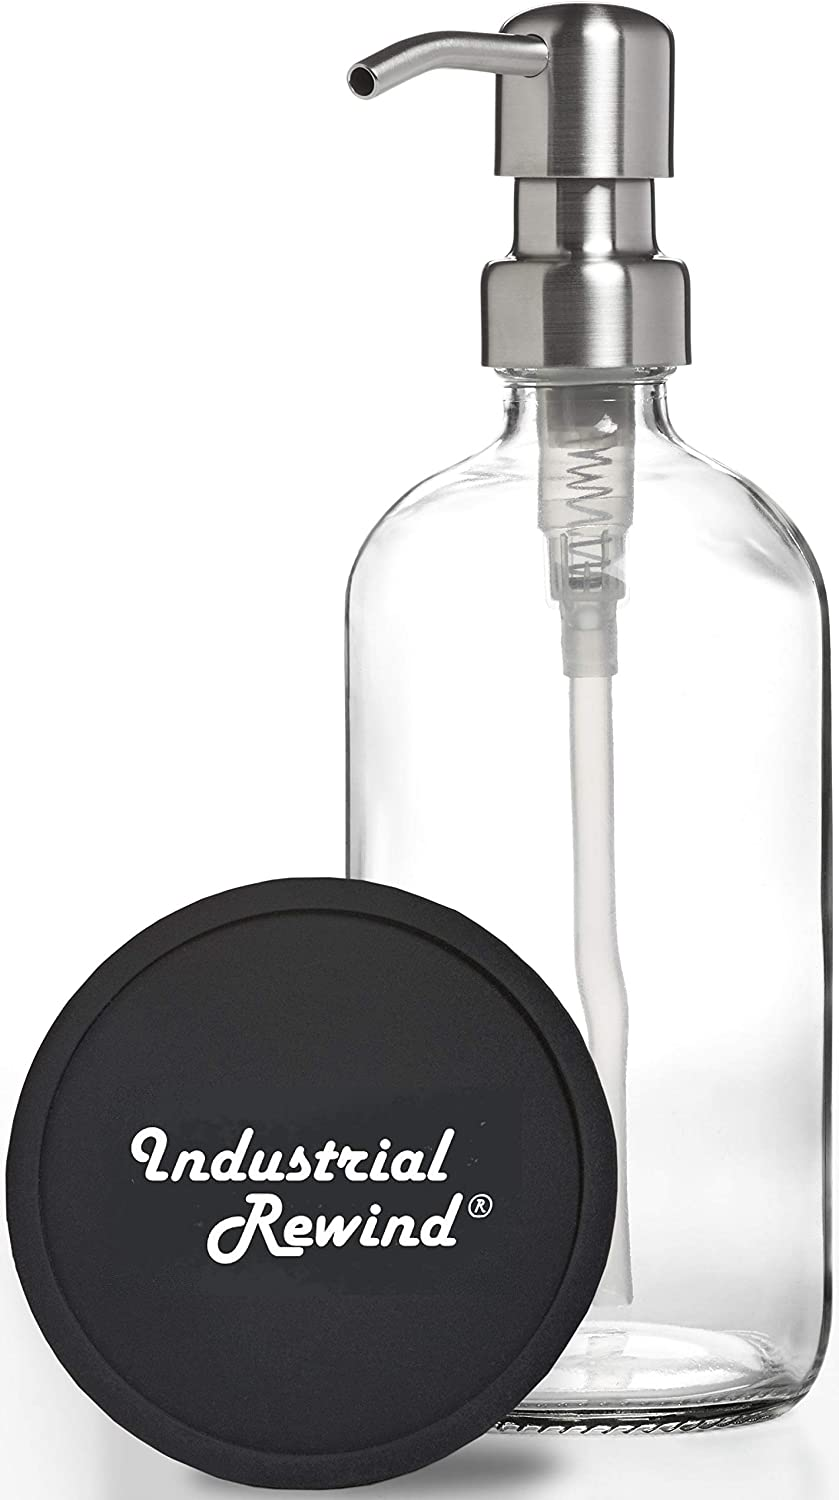 Industrial Rewind Clear 8oz Glass New products Charlotte Mall world's highest quality popular with Dispenser Stainless Soap